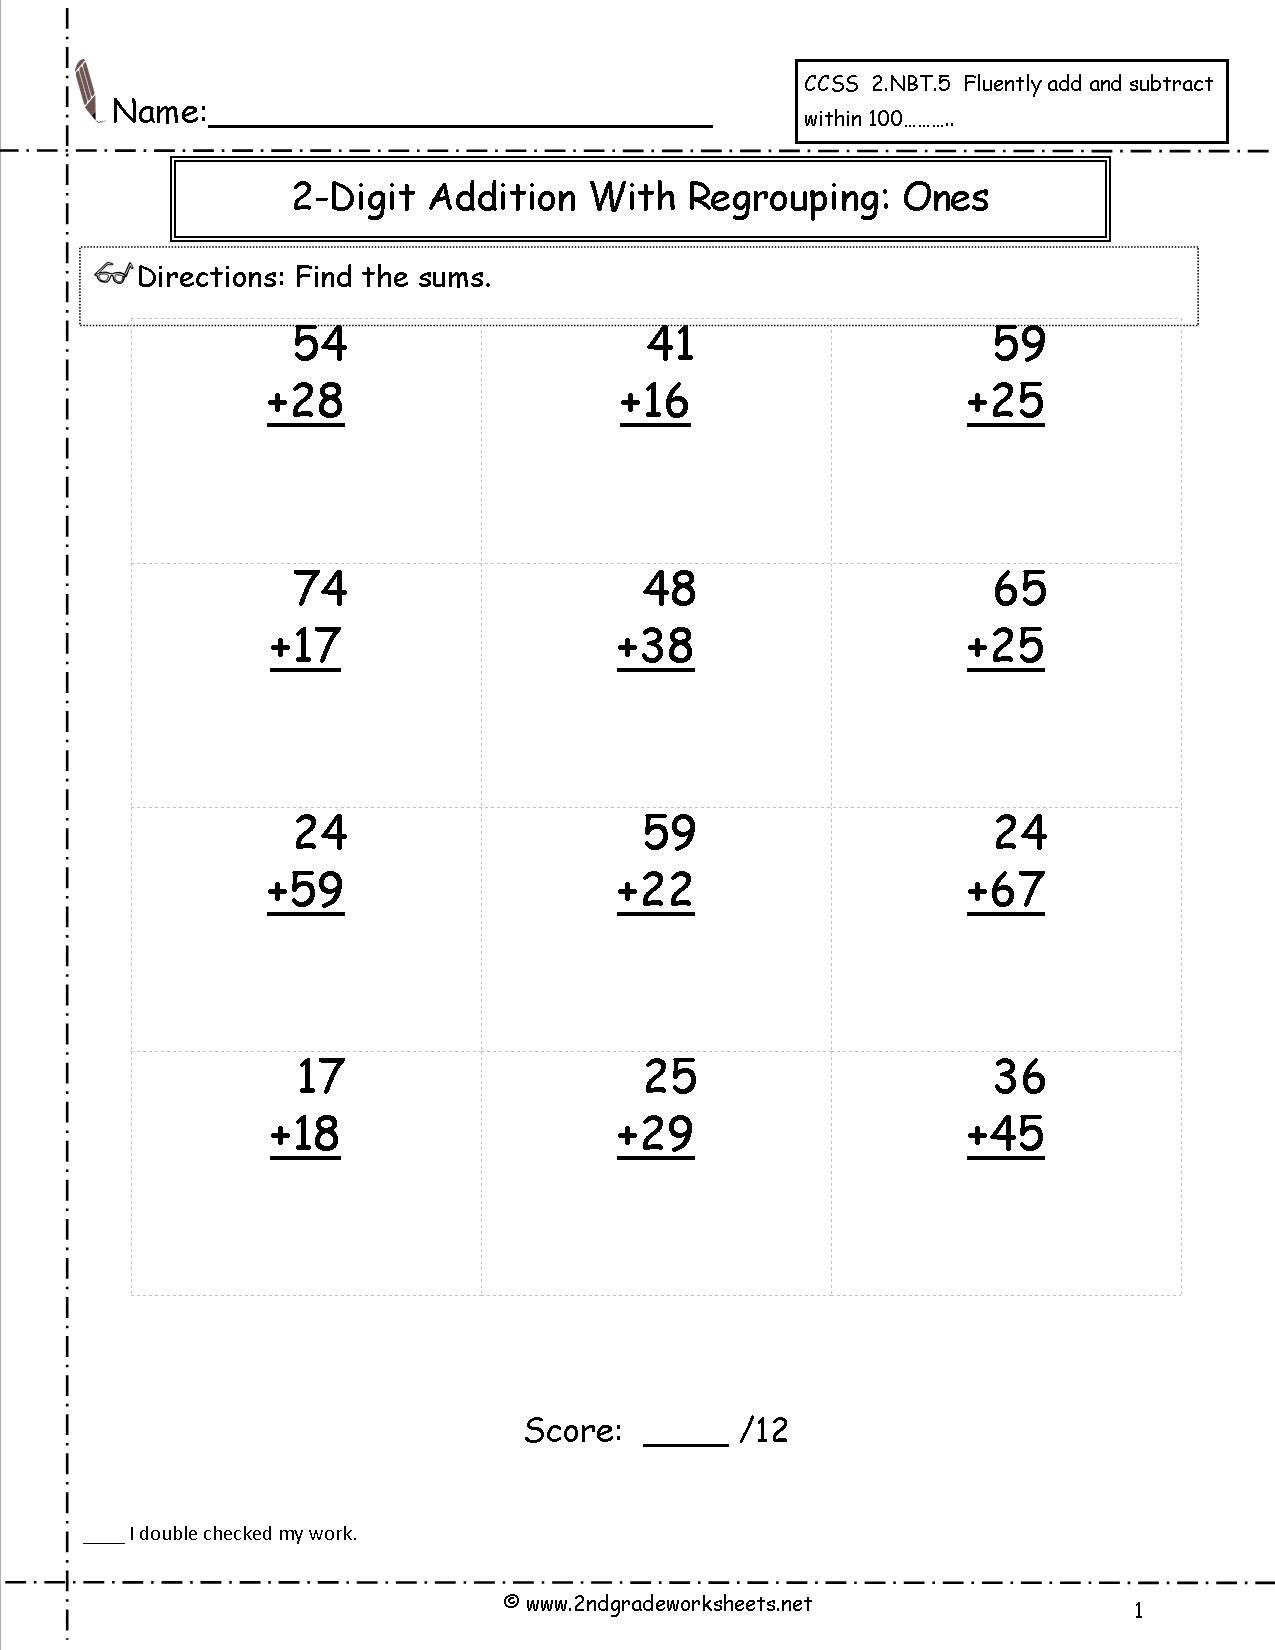 two digit addition with regrouping worksheet | satta | Pinterest ...